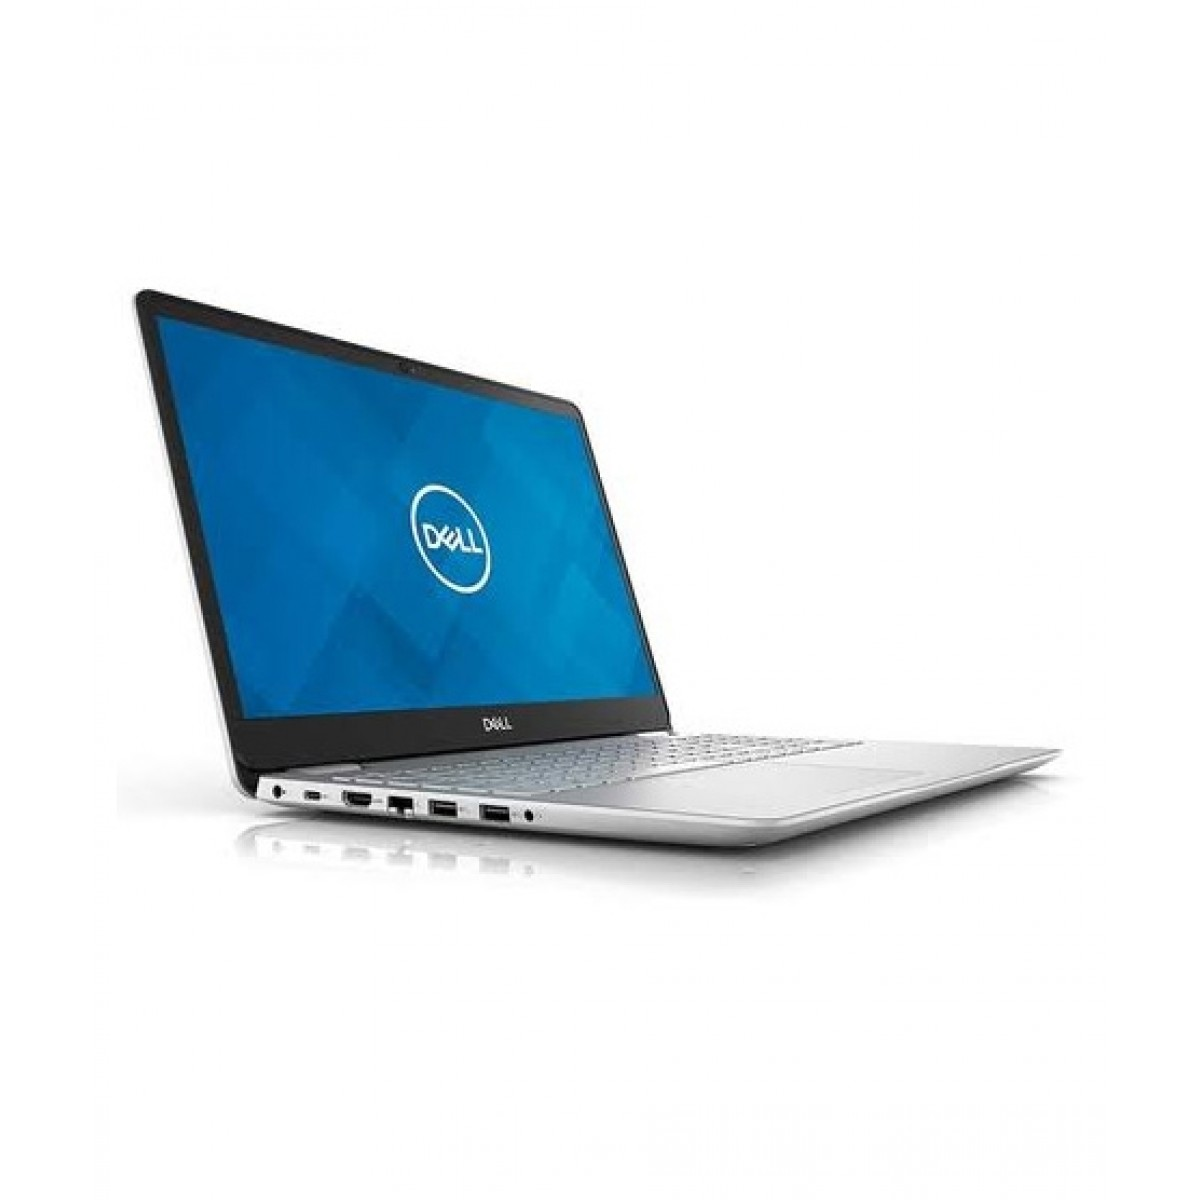 Dell Inspiron 15 5000 Series Core i7 8th Gen 8GB 2TB Nvidia MX130 Laptop  Silver (5584) - Official Warranty